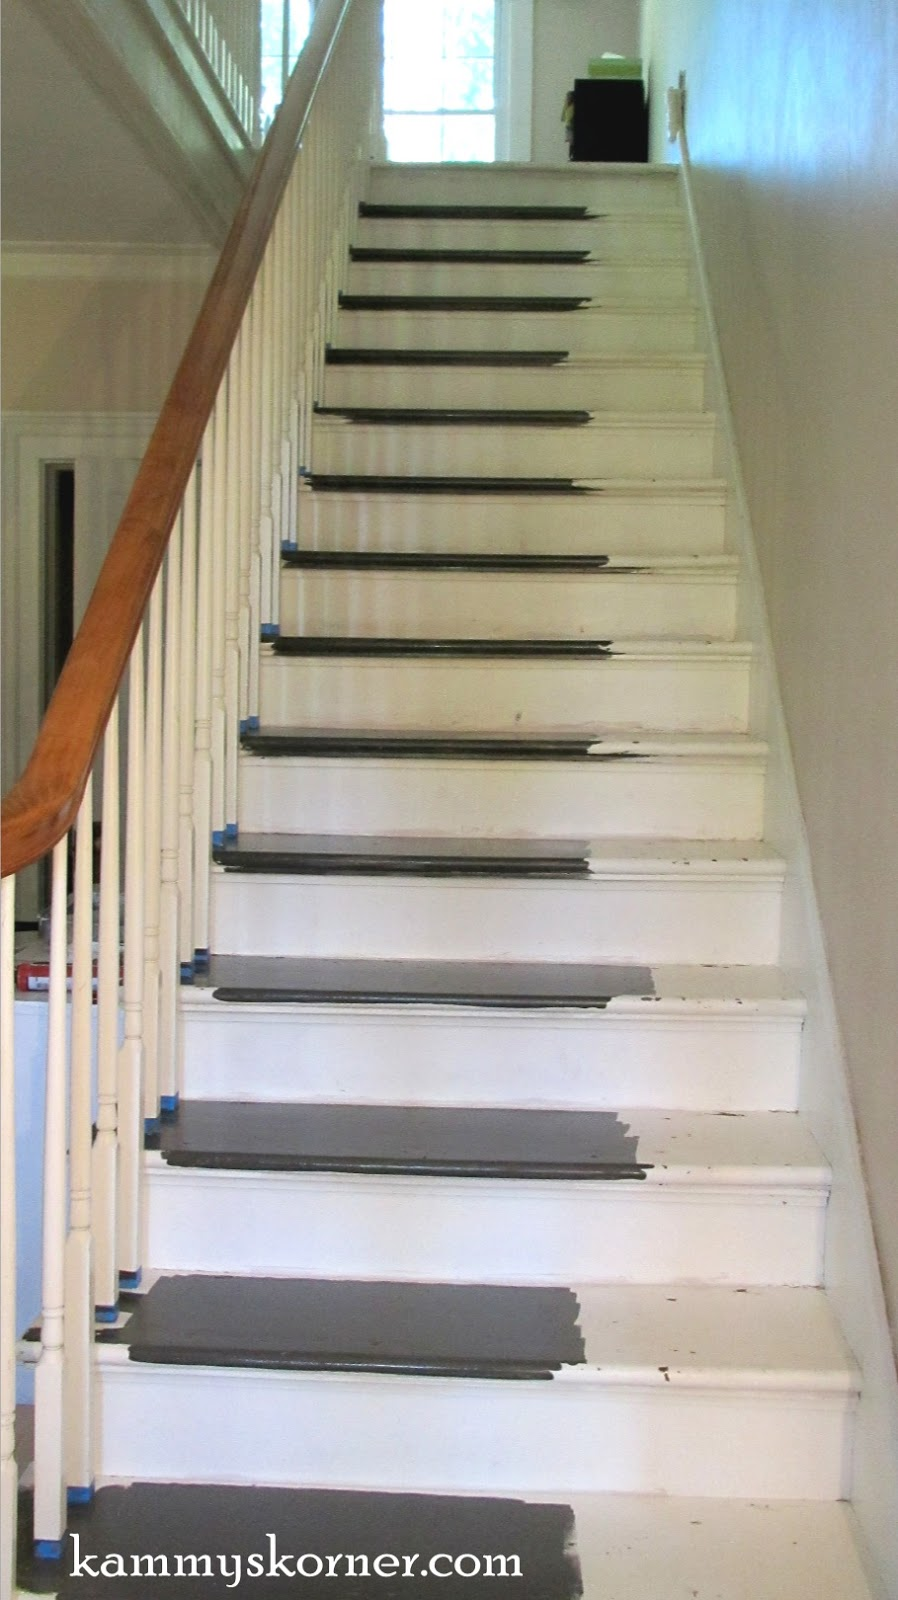 kammy 39 s korner painting the stairs with diy chalk paint. Black Bedroom Furniture Sets. Home Design Ideas